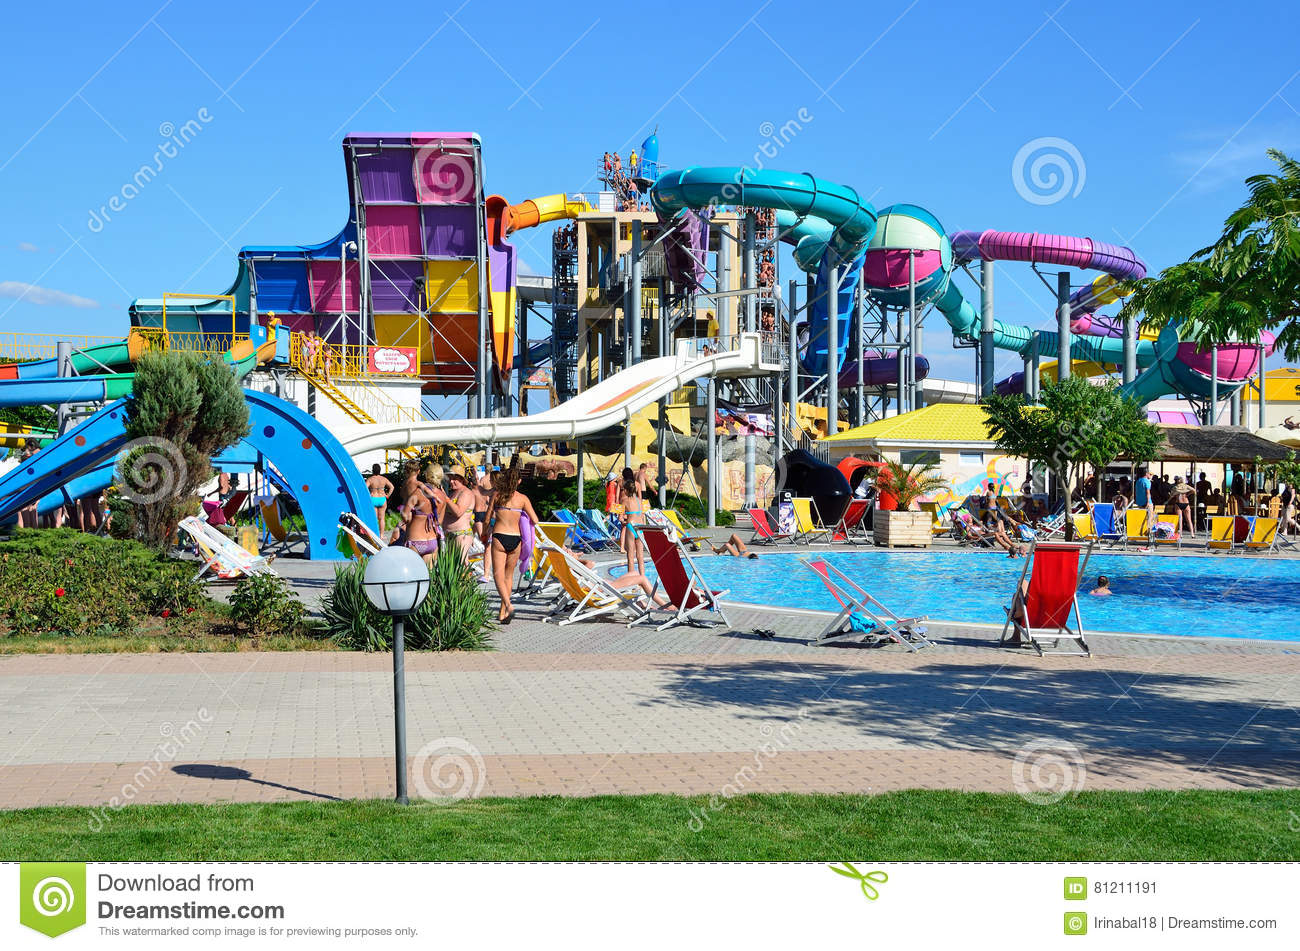 The best water park in Crimea where What are its advantages